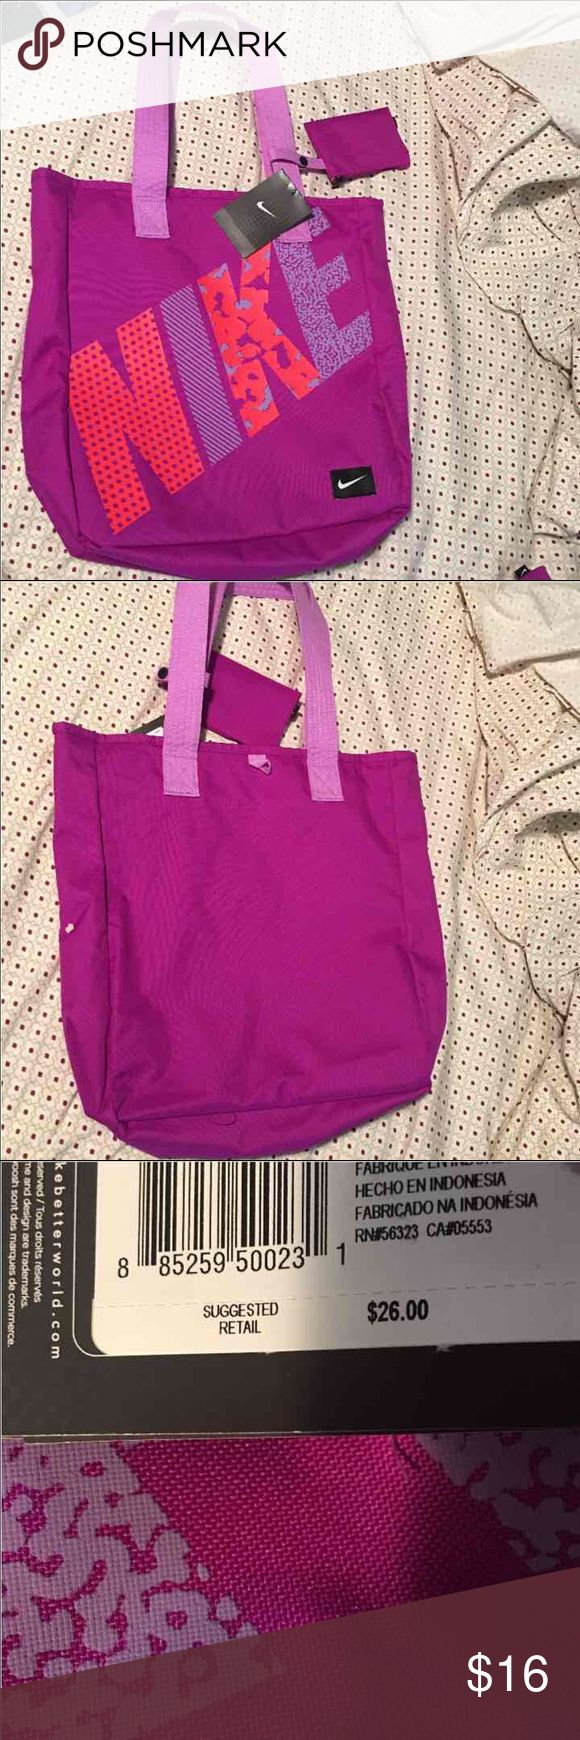 Nike tote bag Purple & bright orange Nike bag. BRAND NEW. Never used. Shoulder bag, has inside pocket. Perfect for gym, shopping or just a purse. Open to offers and questions! a RETAIL PRICE $26!! Nike Bags Totes